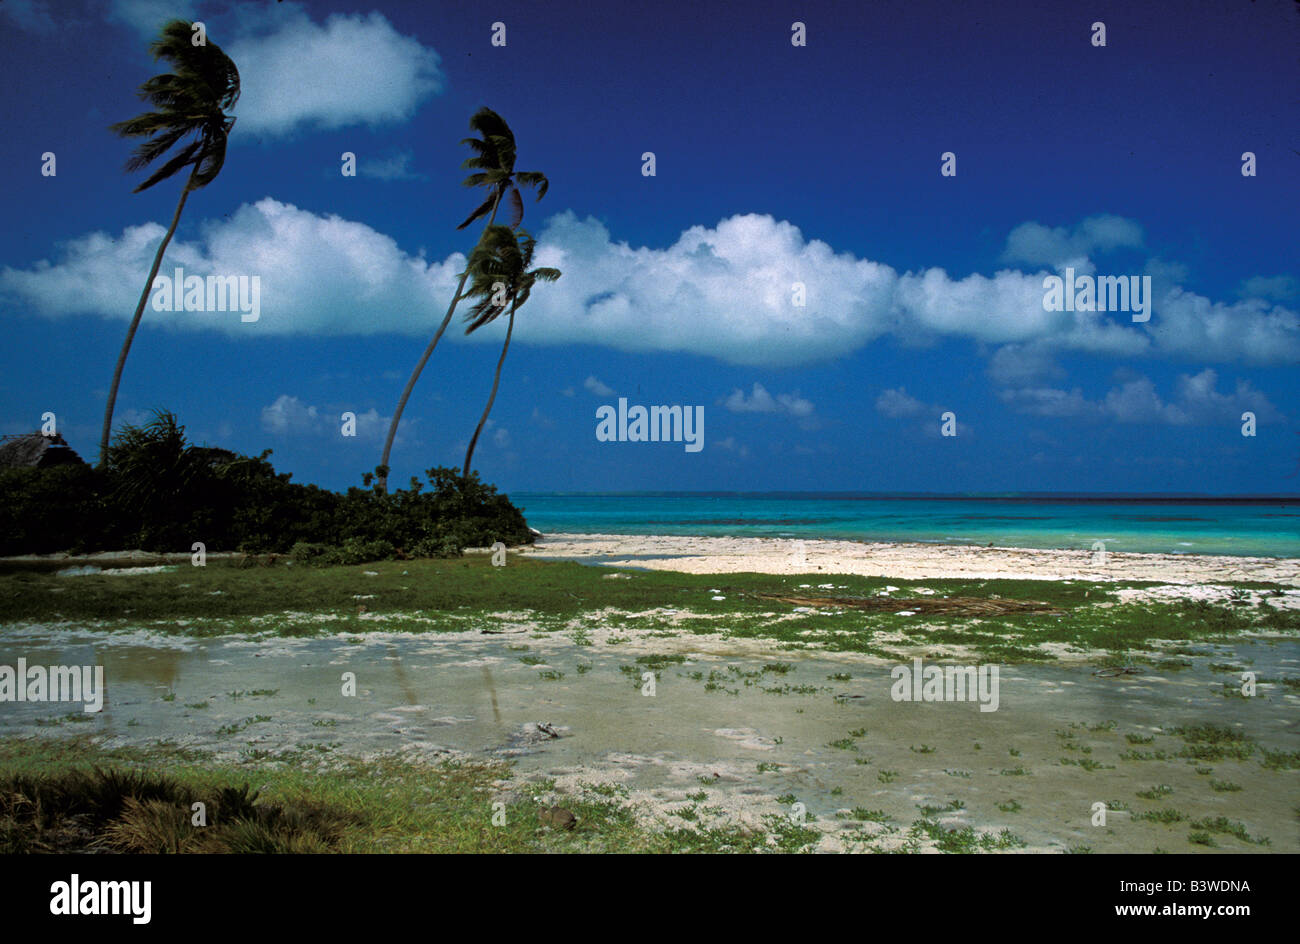 Oceania, Fanning Island, Kiribati. Lagoon with palm trees. Stock Photo